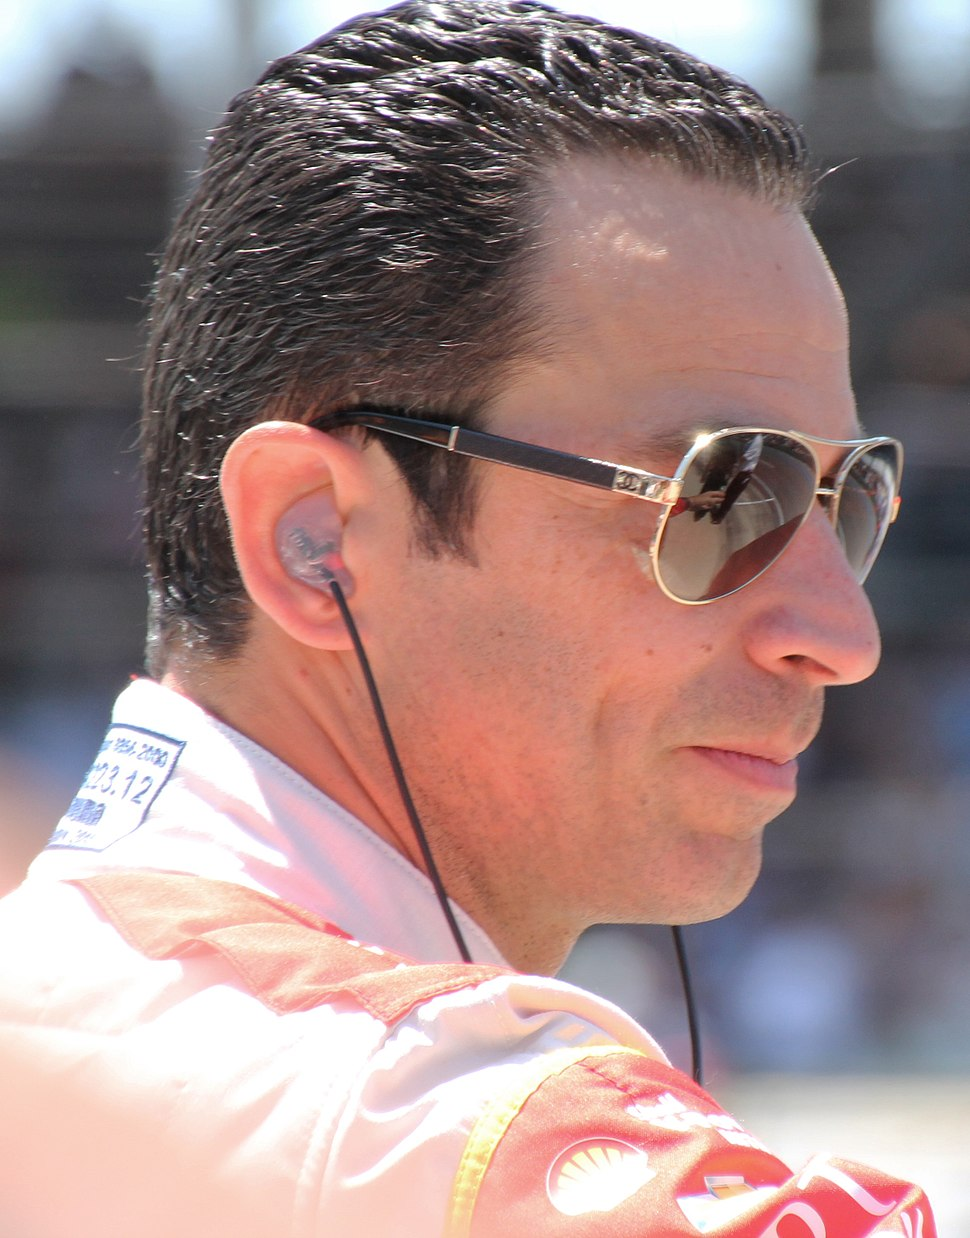 Hélio Castroneves at Pit Stop Challenge - 2015 - Stierch